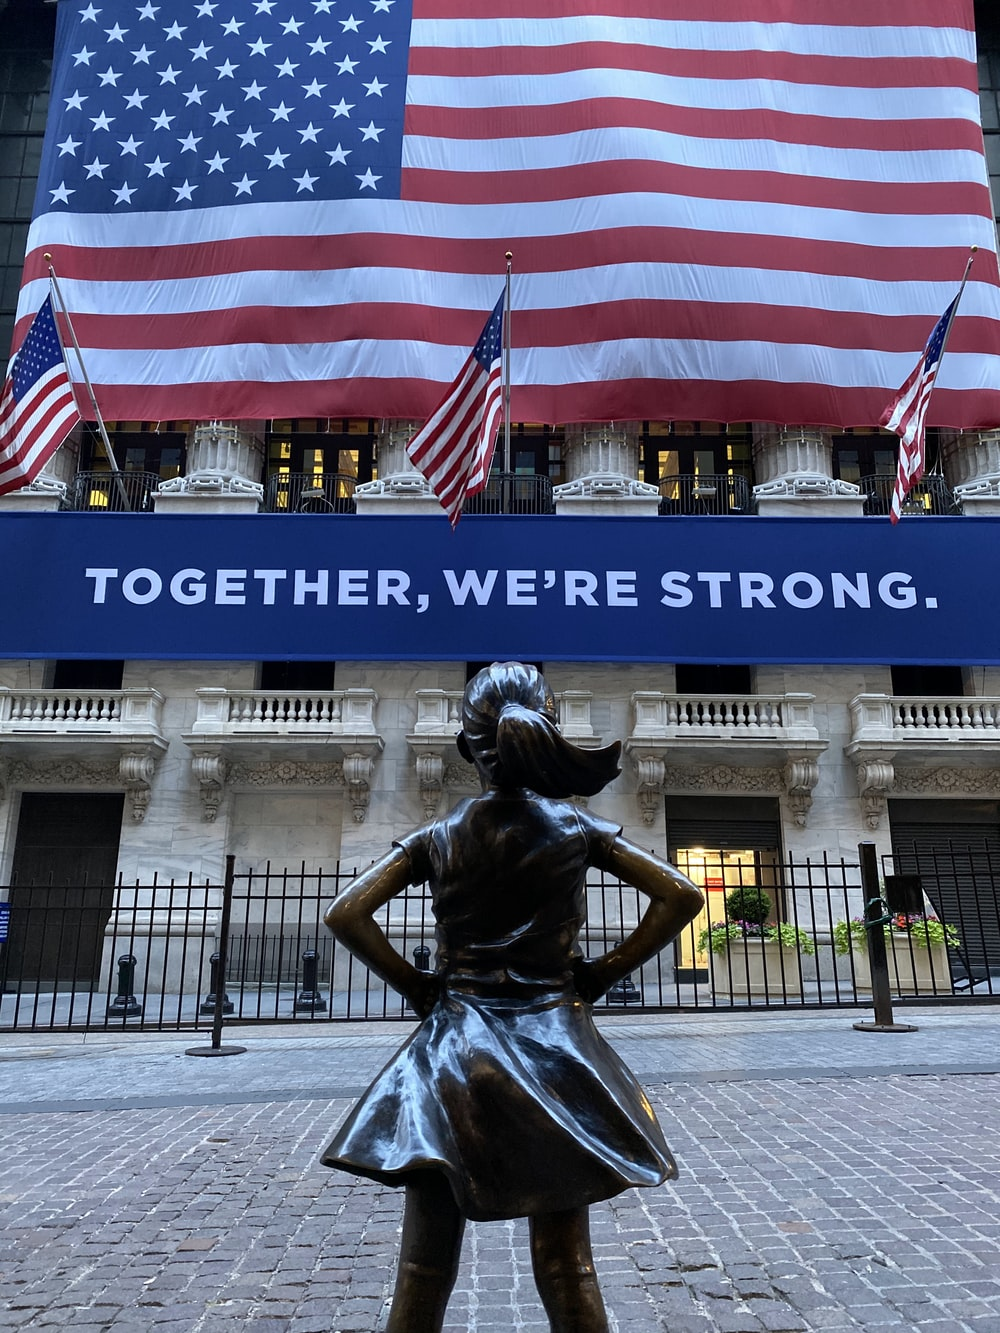 woman in black dress statue near american flag during daytime